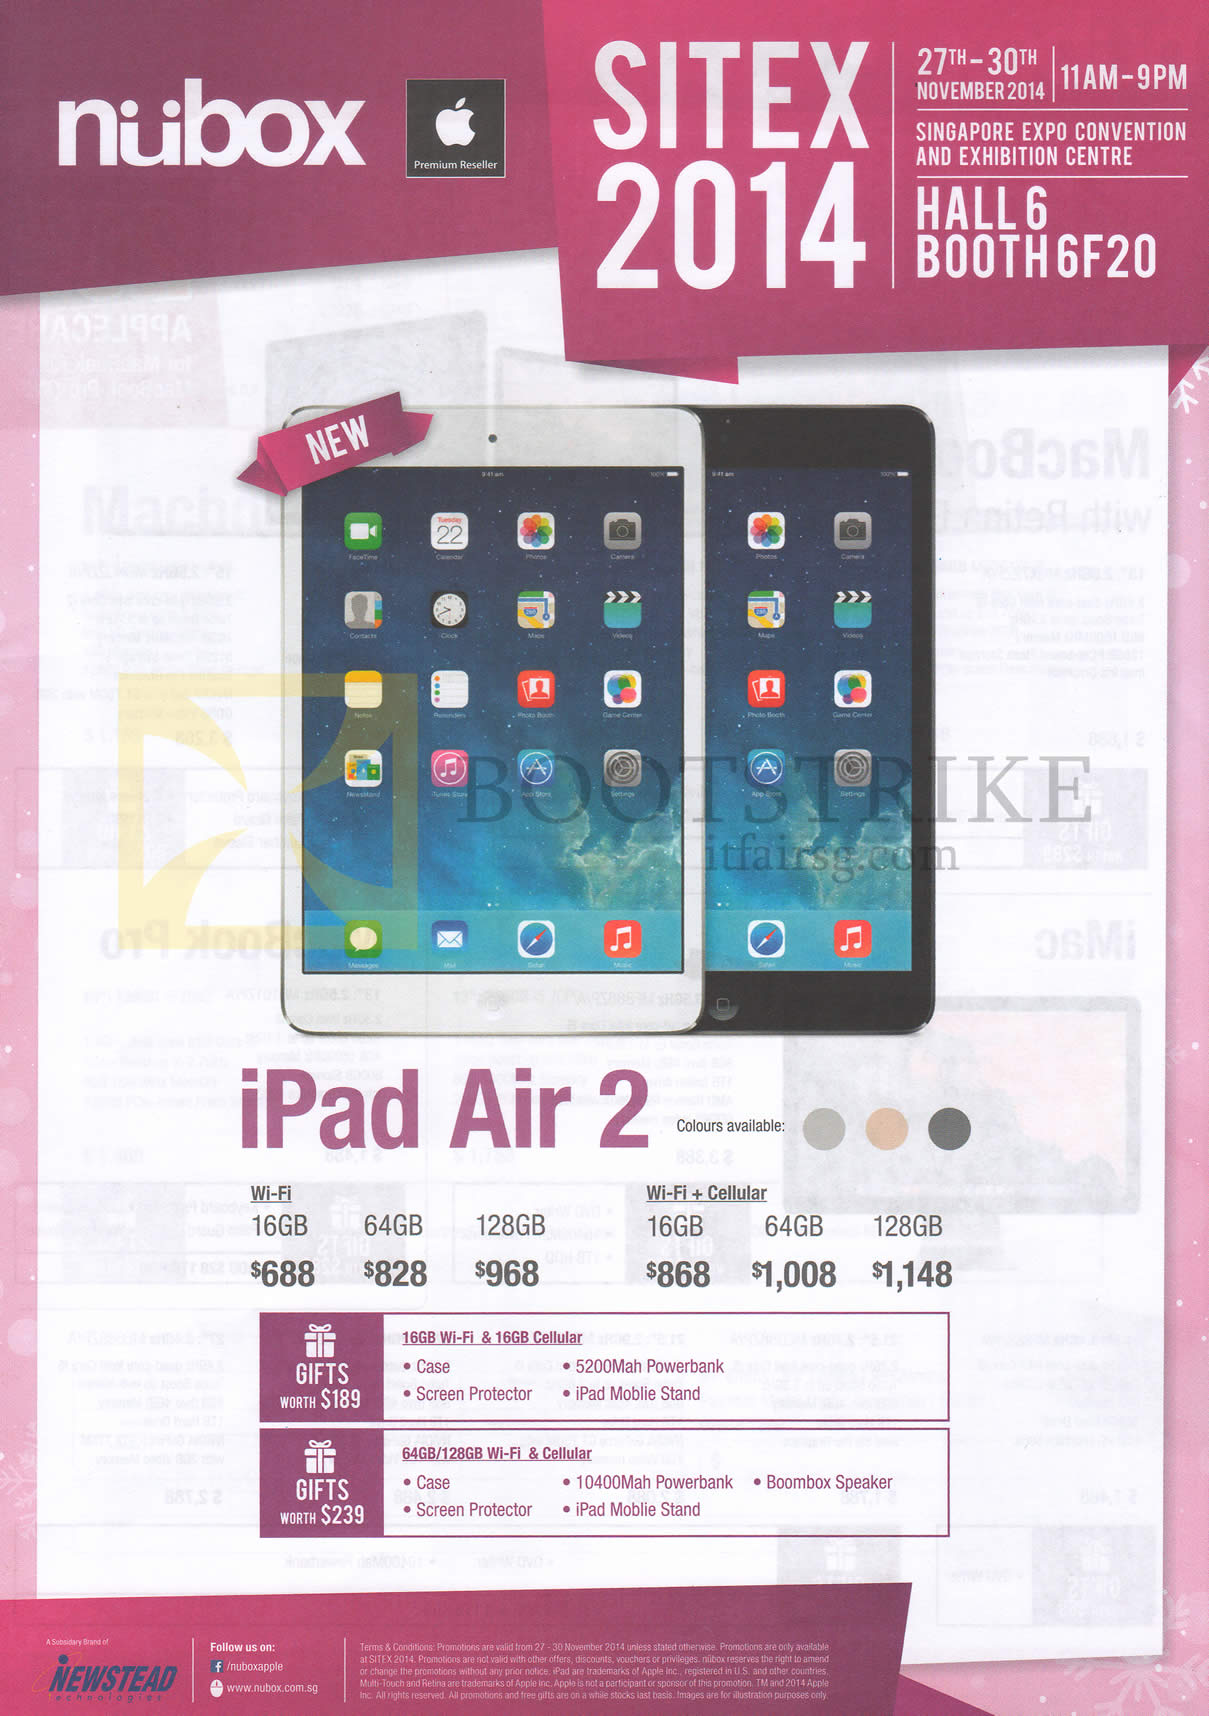 Nubox apple ipad air tablet wi fi wi fi plus cellular 2 for O tablet price list 2014